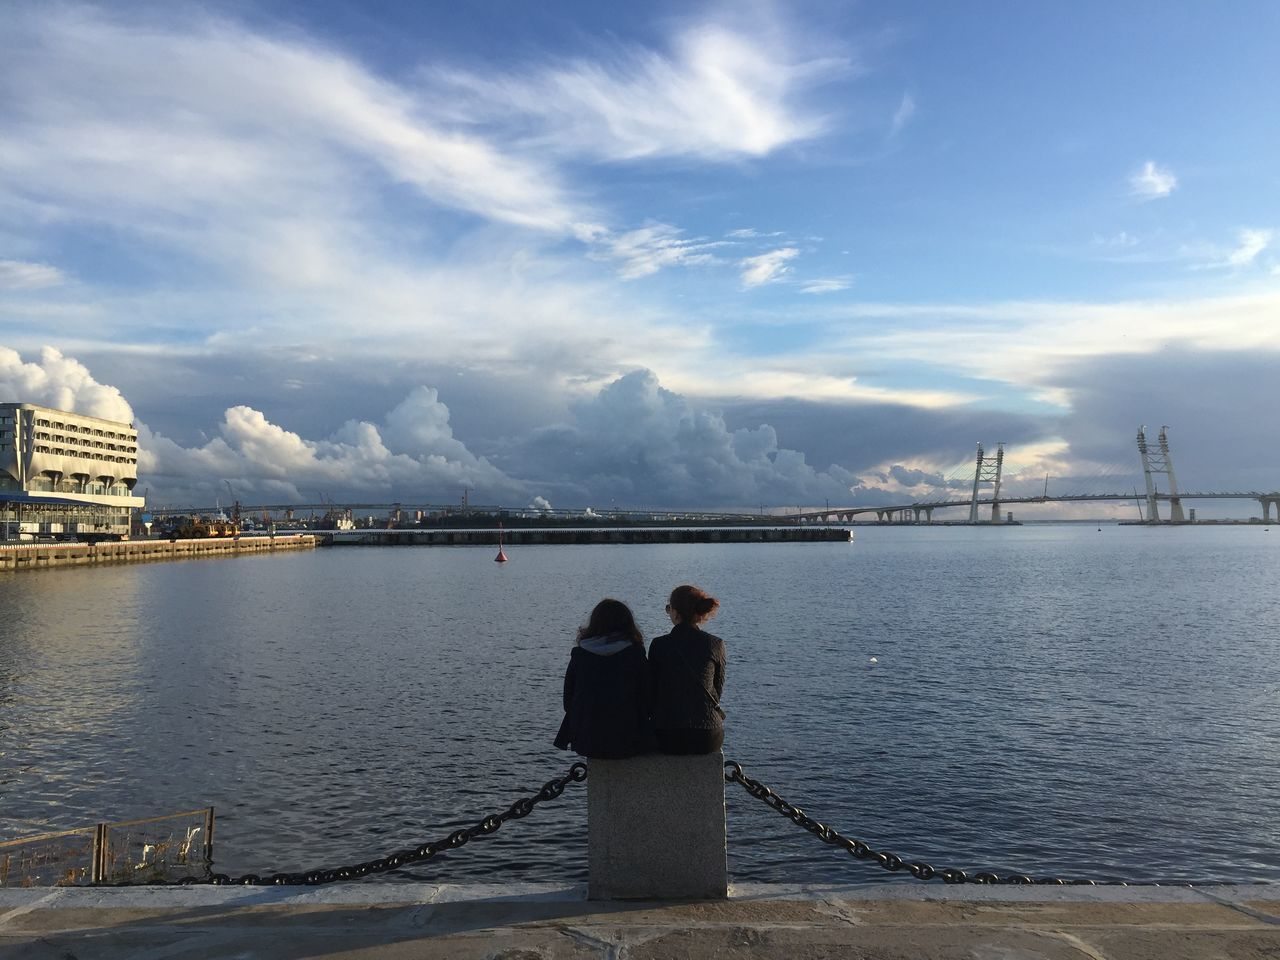 Enjoying sunset in Saint Petersburg Haven Architecture Bridge - Man Made Structure Building Exterior Built Structure City Cloud - Sky Connection Day Lifestyles Men Nature No People Outdoors People Real People Rear View Russia Saint Petersburg Sky Sunset Togetherness Two People Water Women